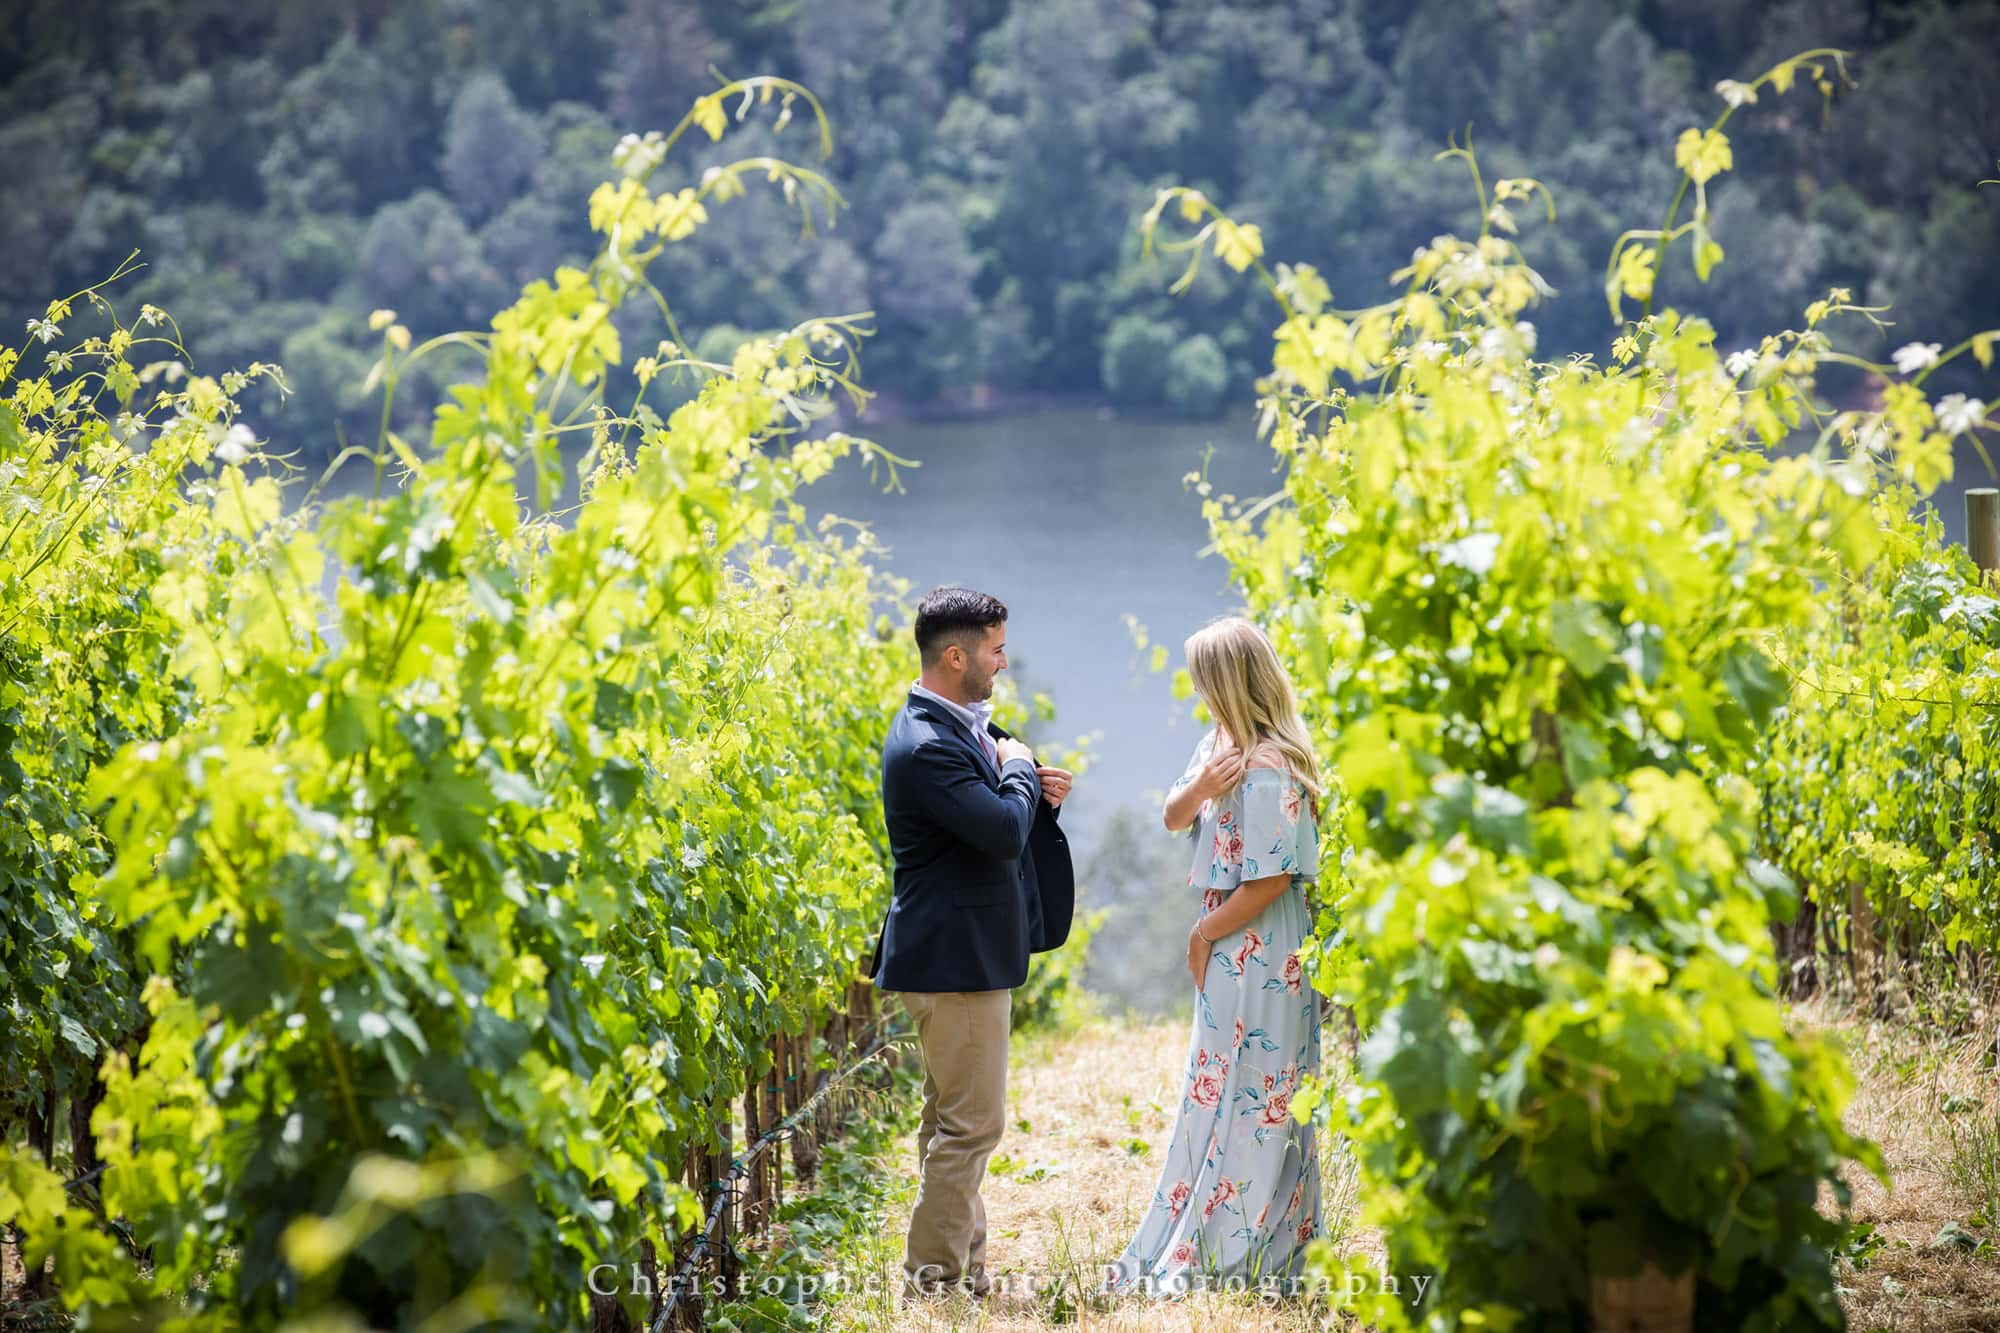 Marriage Proposal Photography in Napa -1002